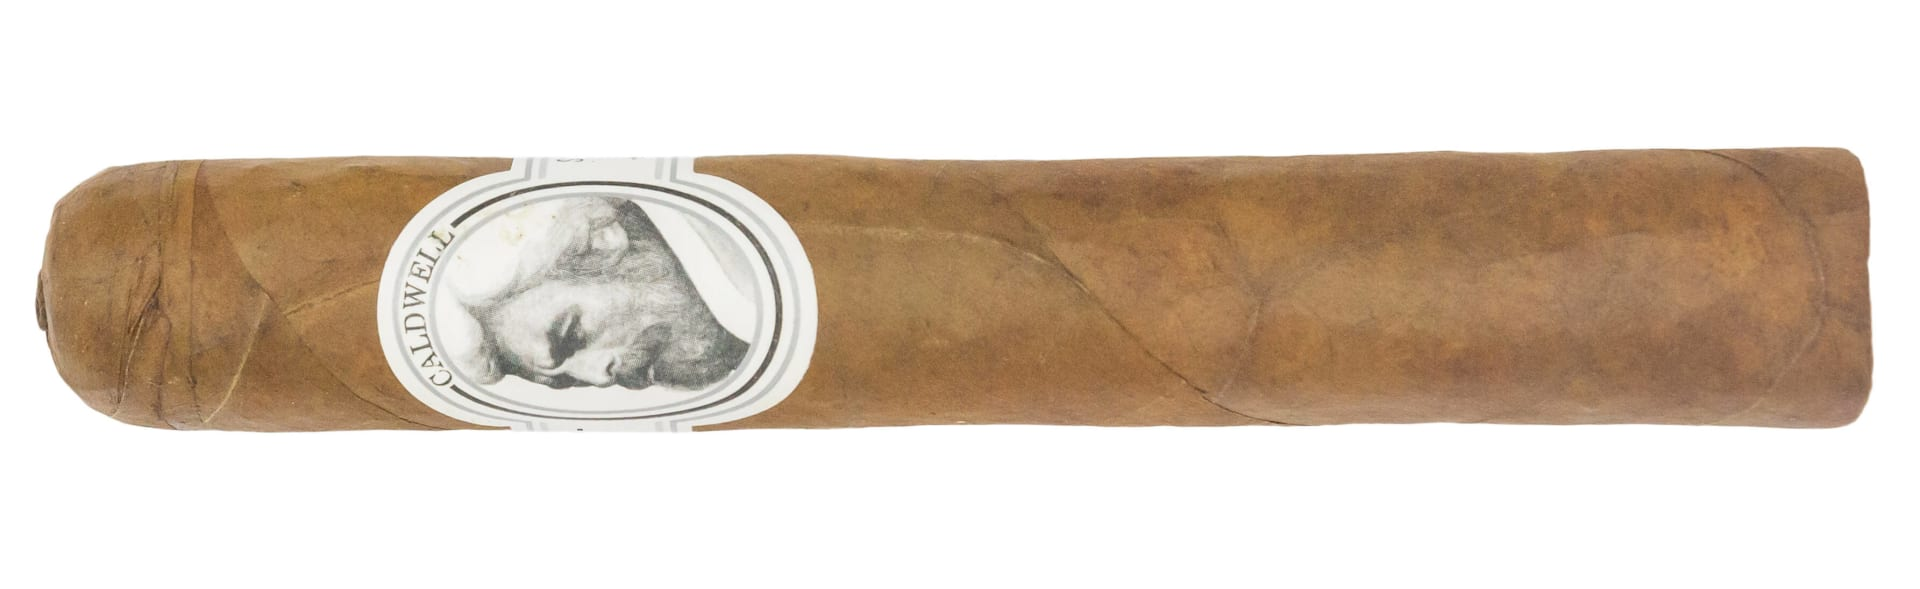 Blind Cigar Review: Caldwell | Eastern Standard Corretto Featured Image